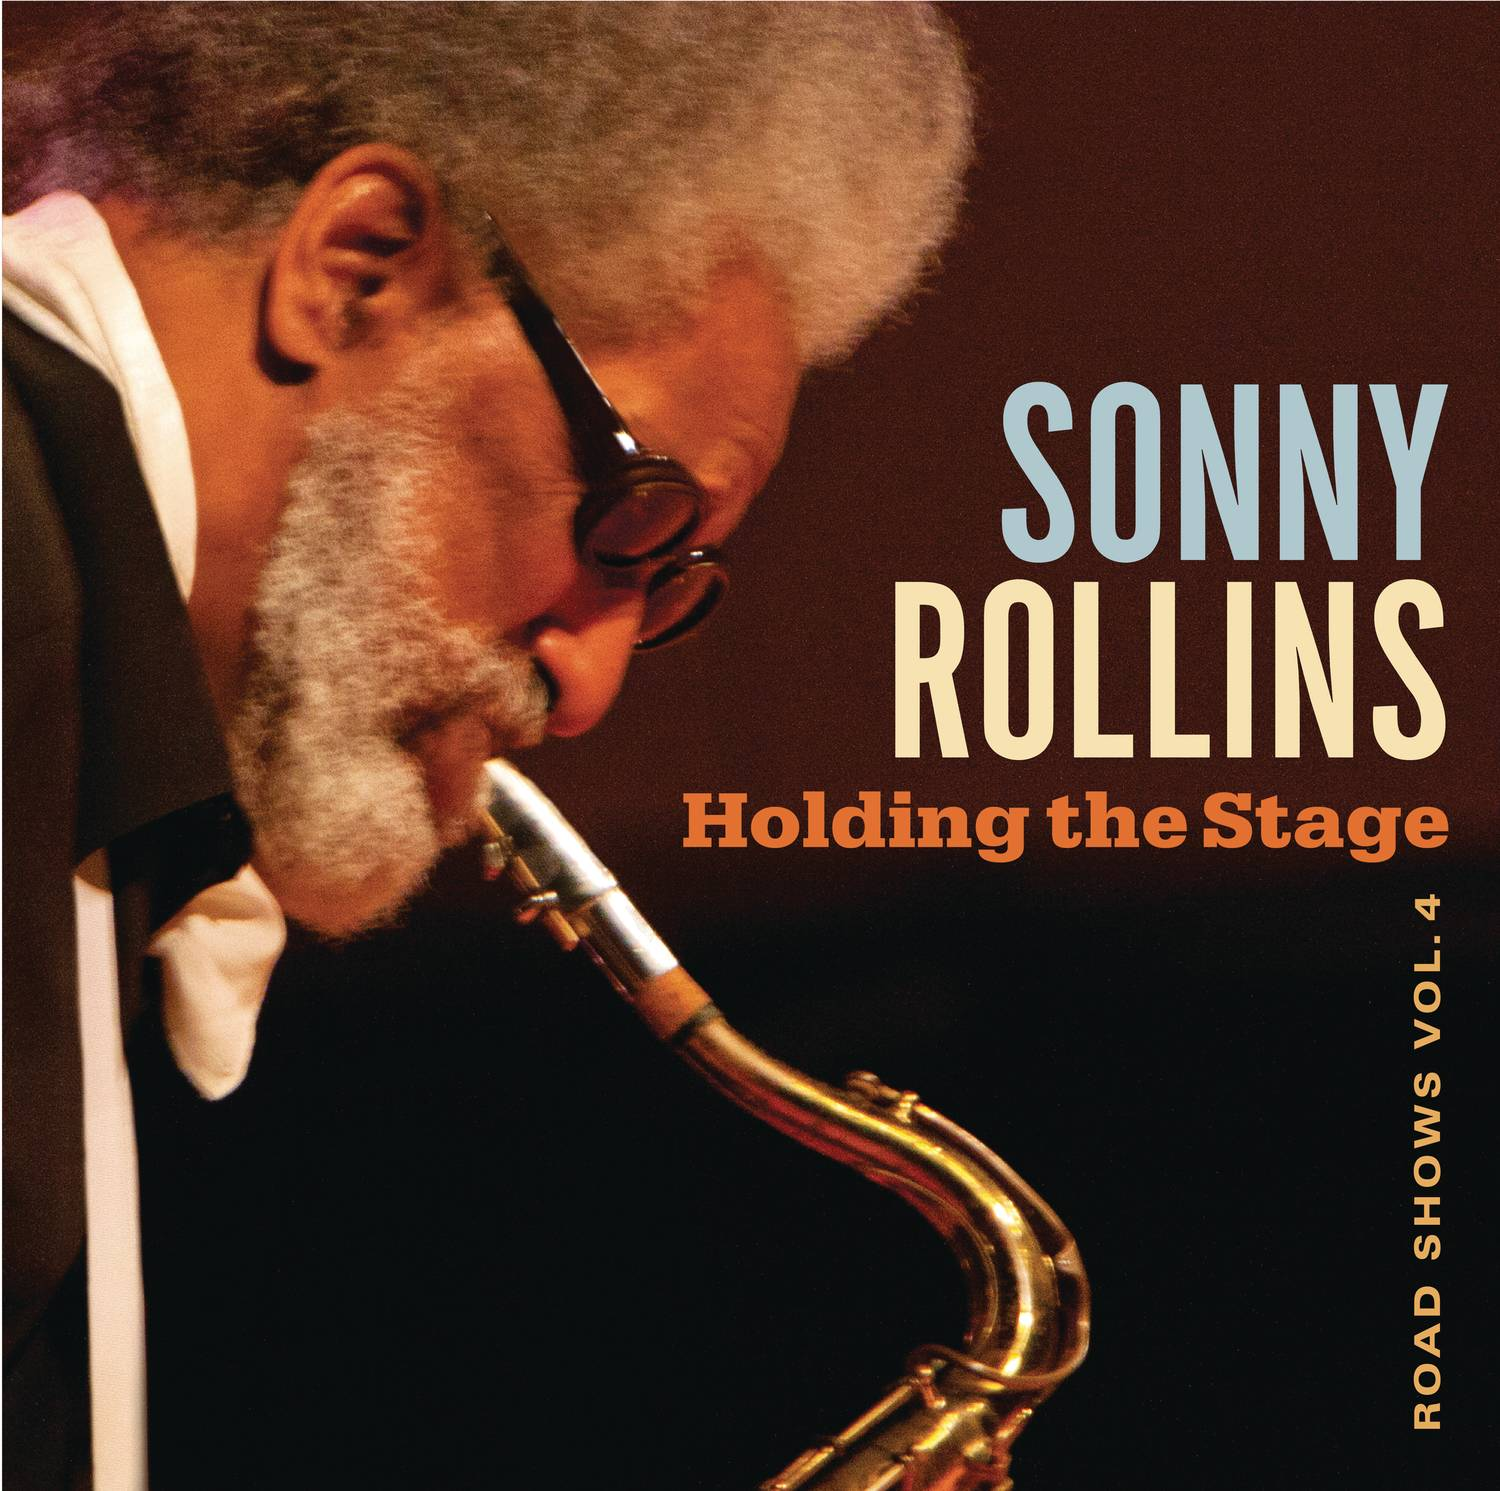 New Album from Sonny Rollins arrives April 8!